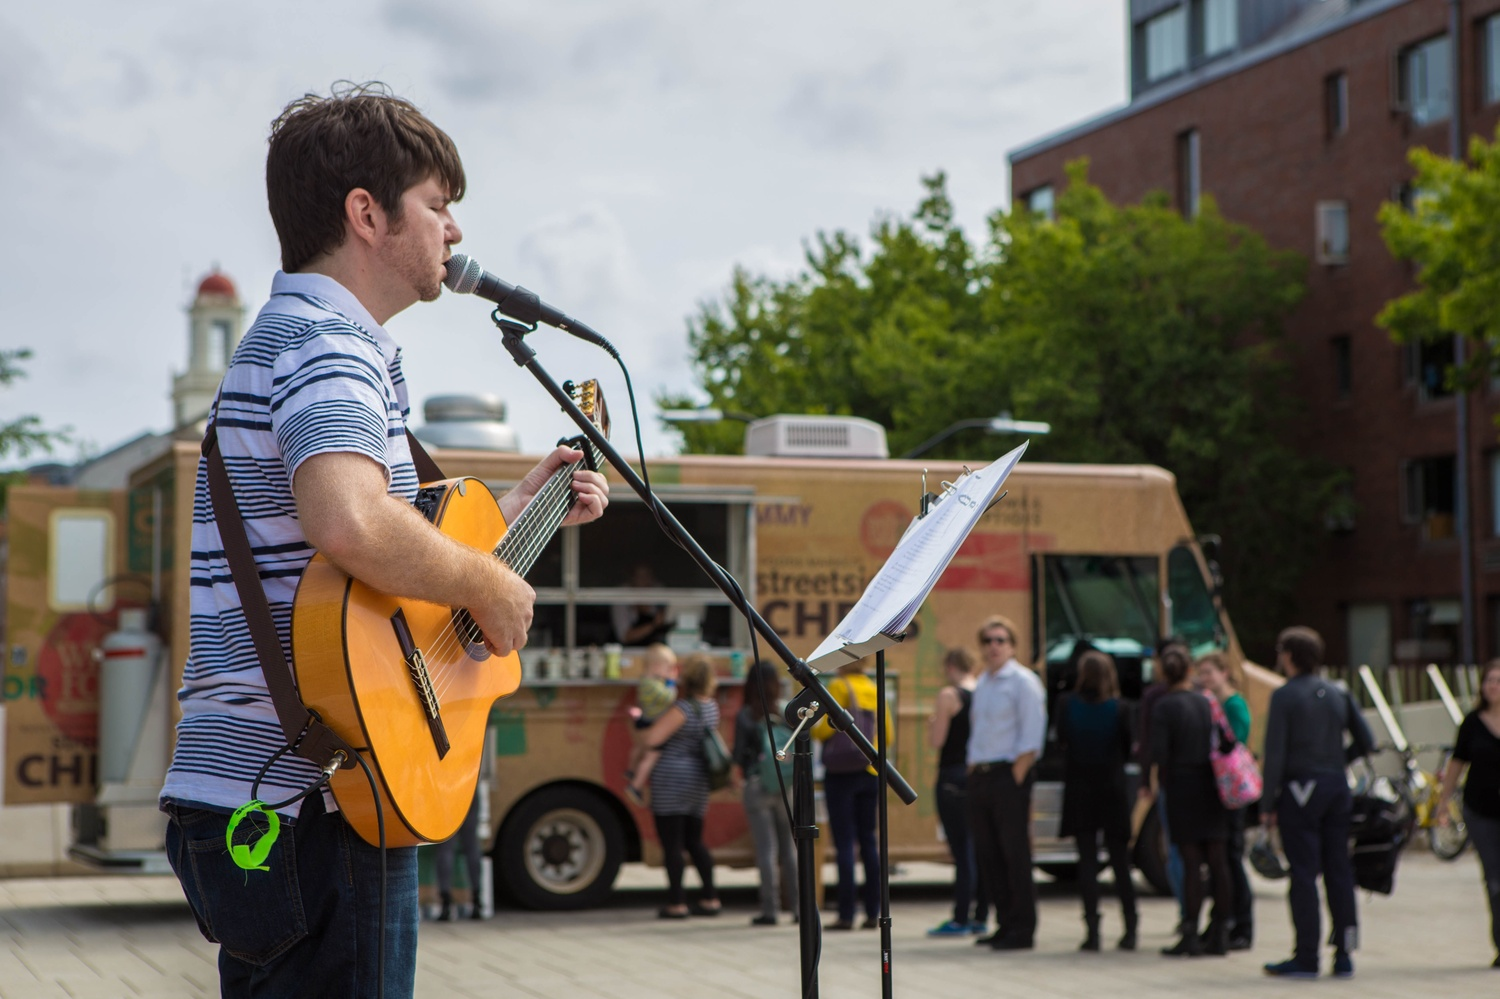 Patrick Yerby, a local musician, plays the guitar and sings at the most recent Pop Up Performance on Tuesday afternoon in the Science Center Plaza. Yerby plays a range of cover and original songs.